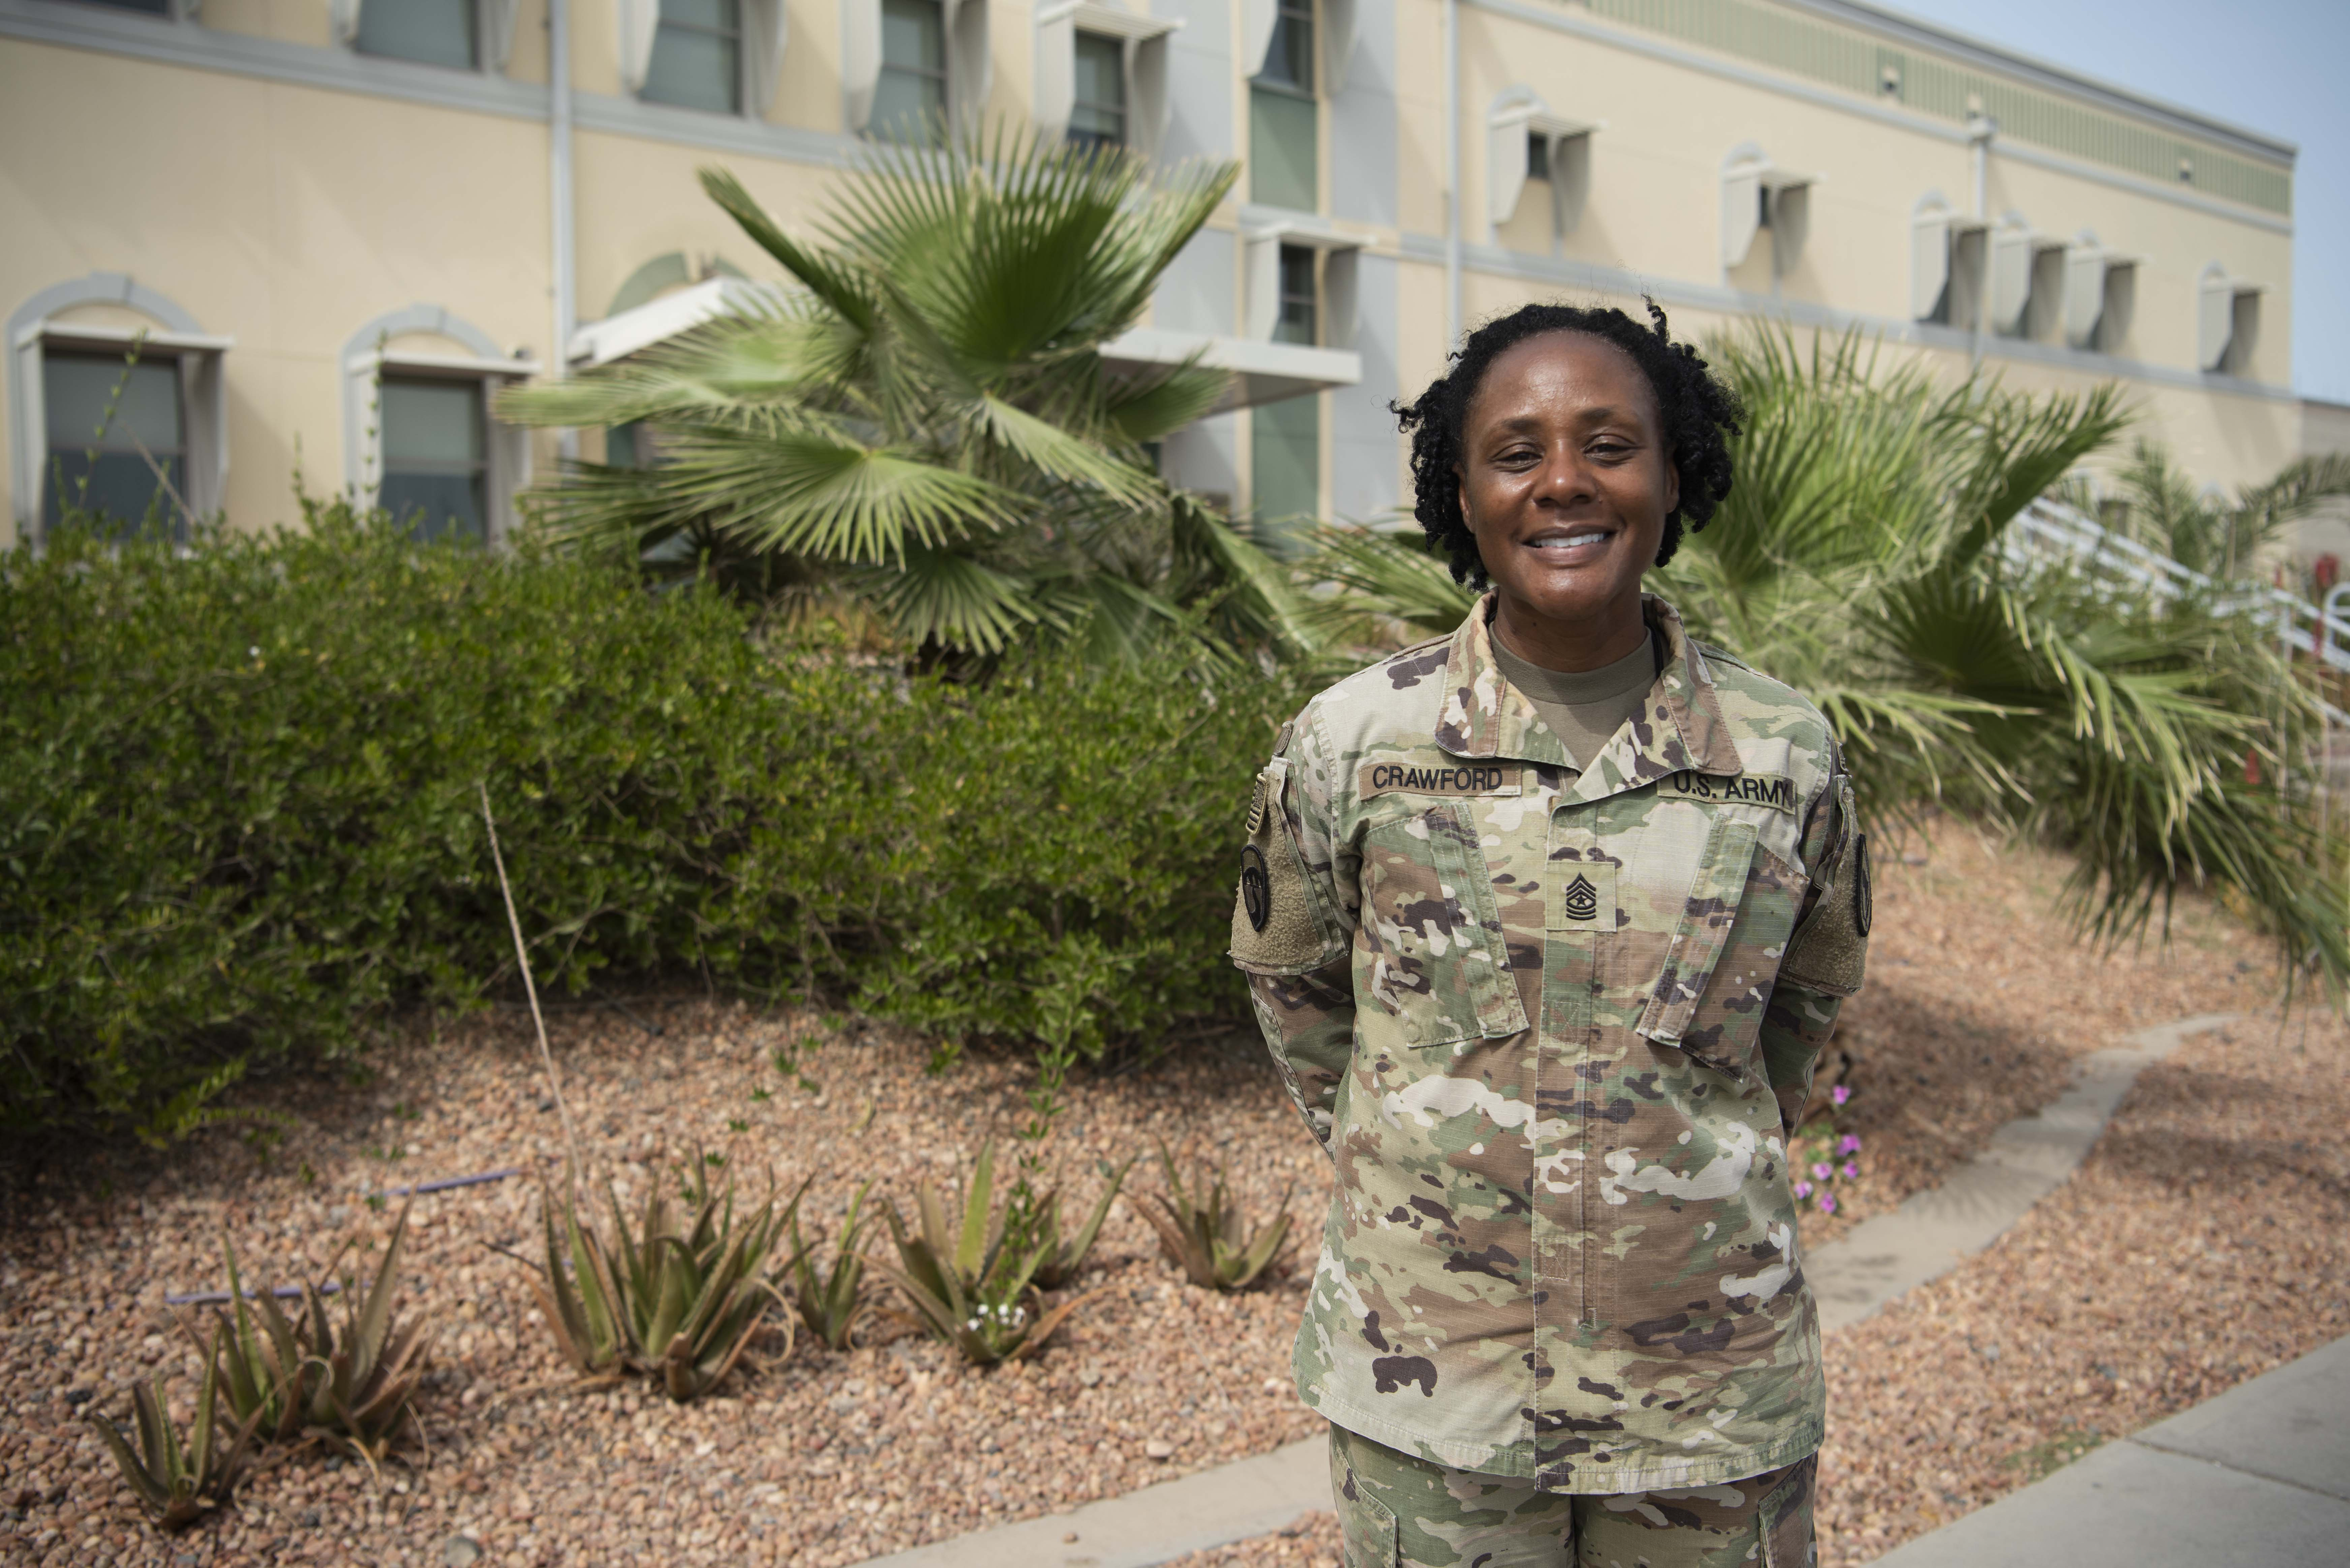 U.S. Army Sgt. Maj. Shadonika Crawford, equal opportunity advisor for Combined Joint Task Force-Horn of Africa (CJTF-HOA), photographed at Camp Lemonnier, Djibouti, Mar. 16, 2020. Crawford began her career as a signal soldier, transitioned to work in finance, and was selected to work in equal opportunity as a broadening assignment. Crawford is currently the highest ranking senior enlisted female in CJTF-HOA and has 29 years of service in the Army Reserve. (U.S. Air Force photo by Tech. Sgt. Ashley Nicole Taylor)